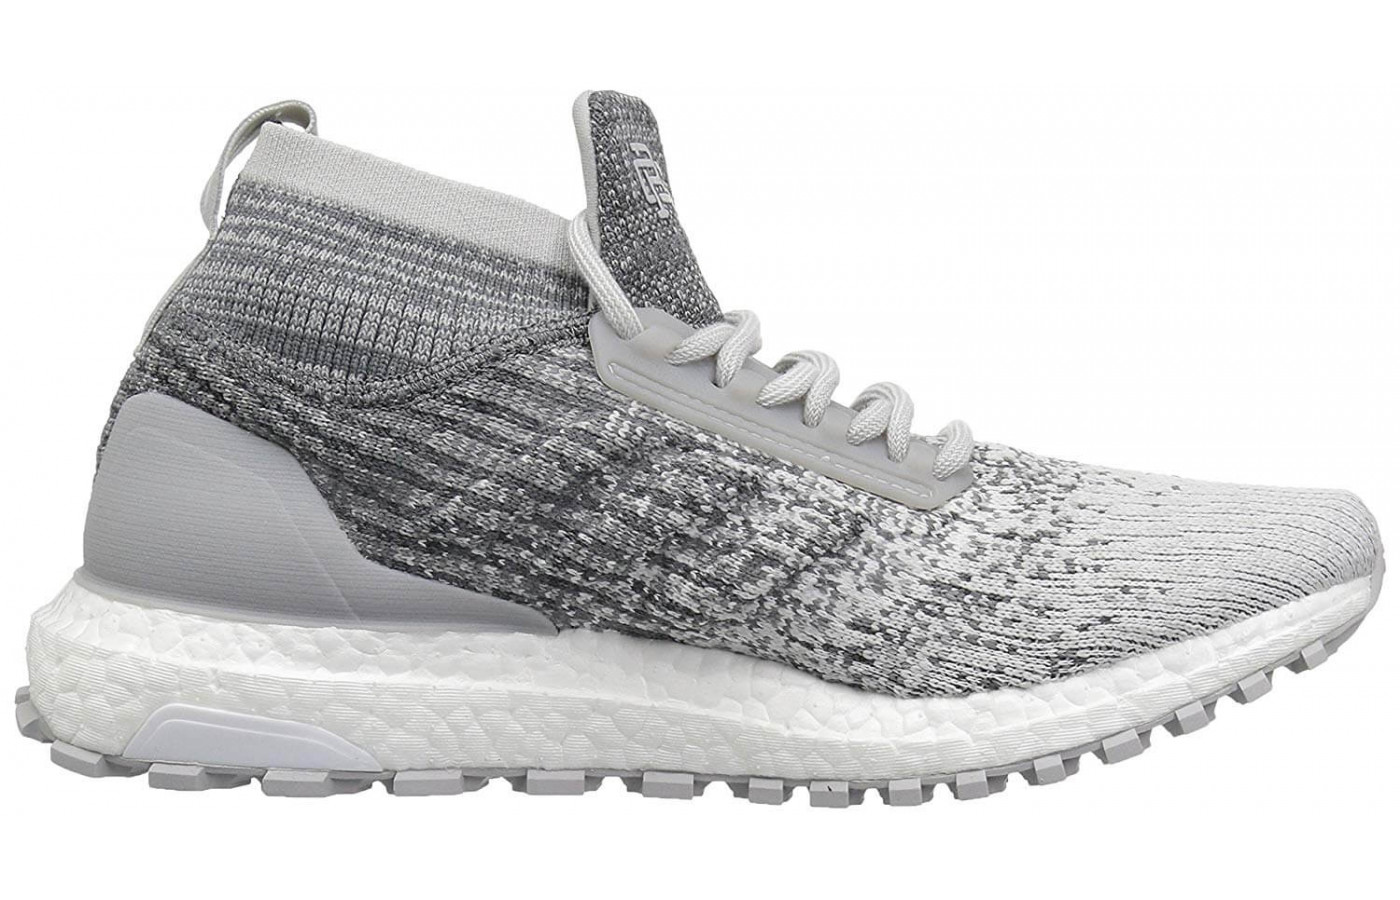 79eb3456ce73c ... The Adidas X Reigning Champ Ultraboost are made of breathable mesh ...